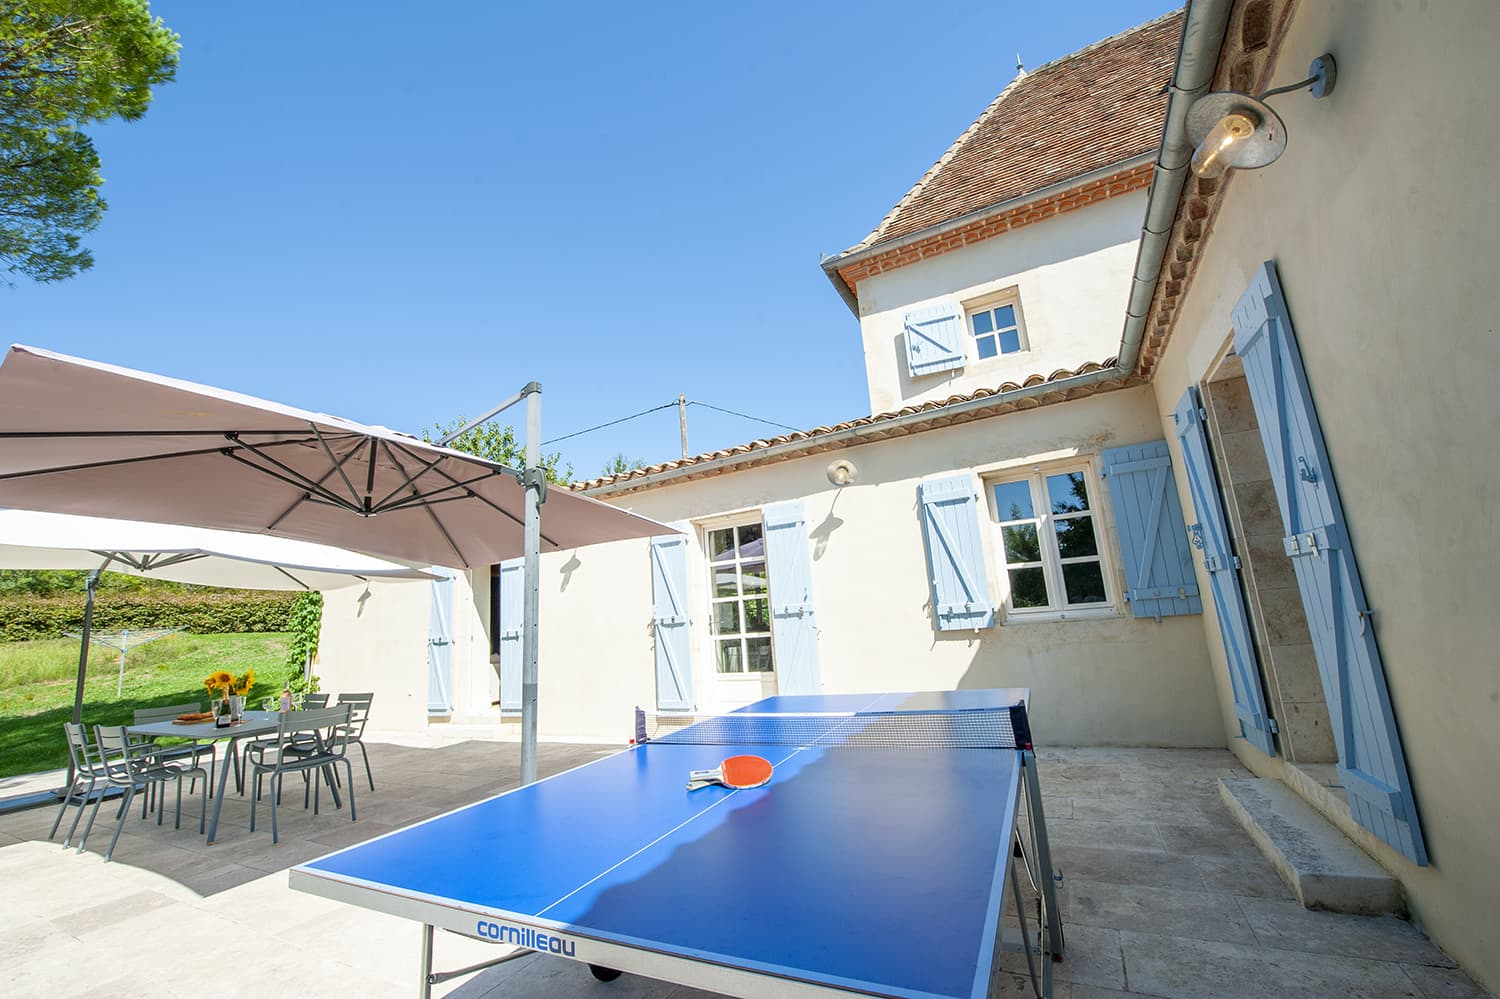 Dining terrace with table tennis